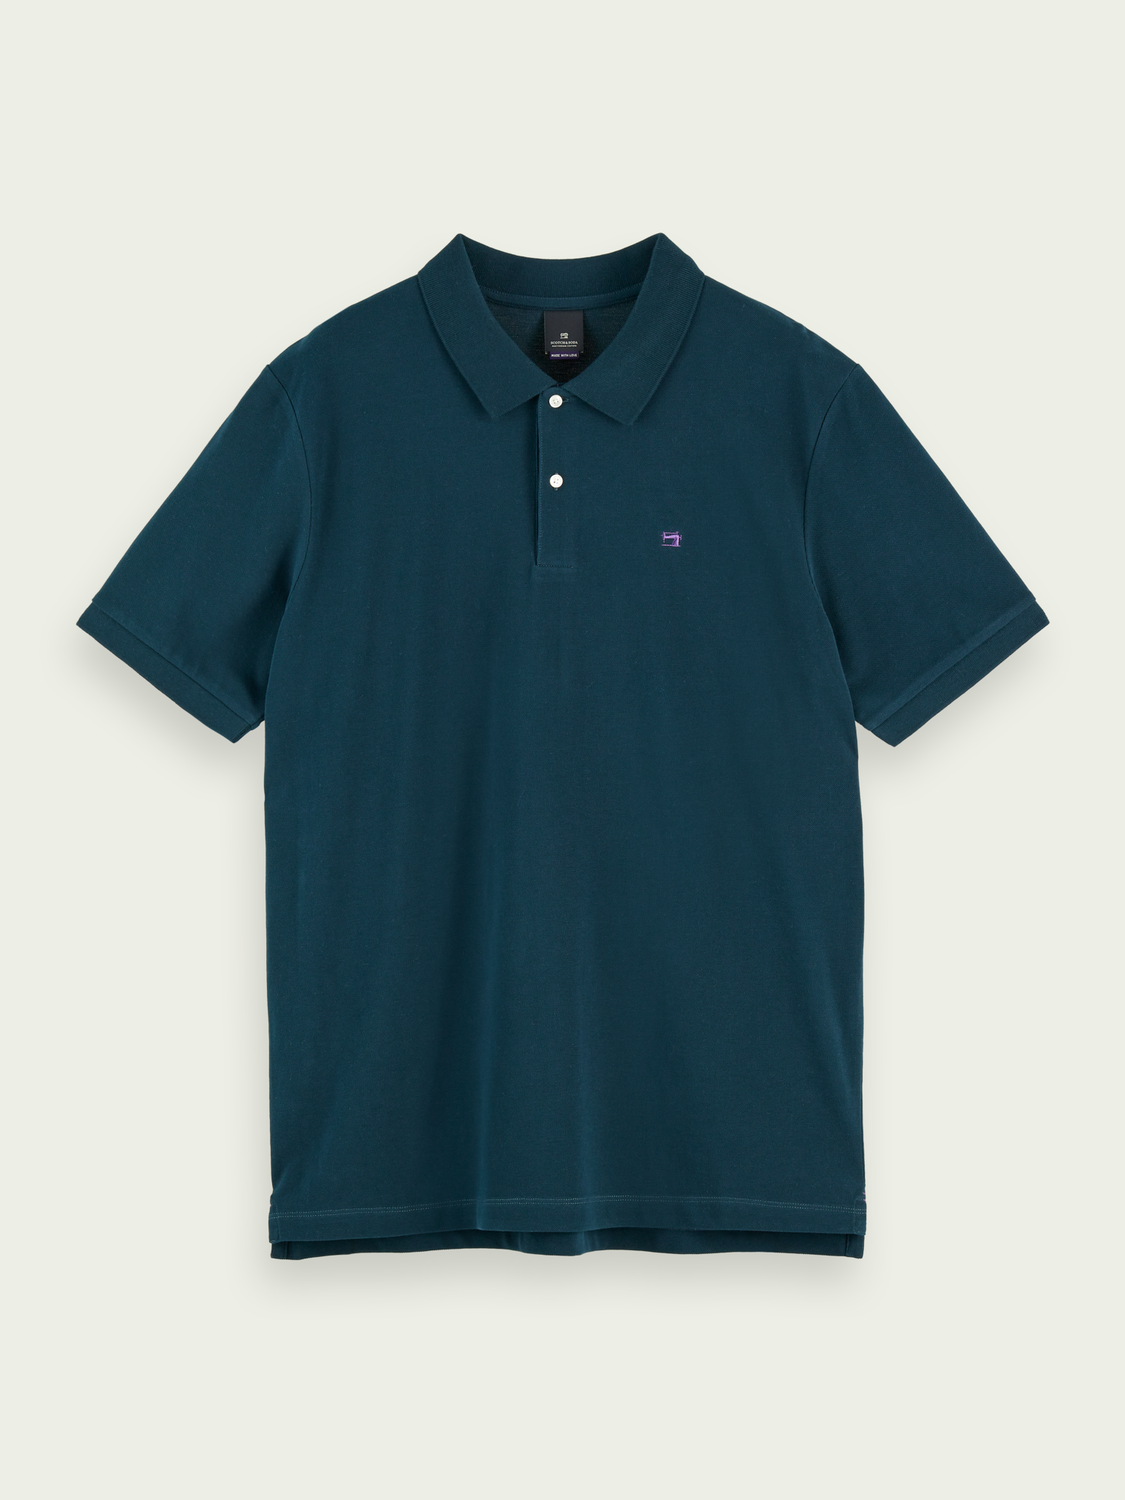 Herrar Pique cotton polo shirt